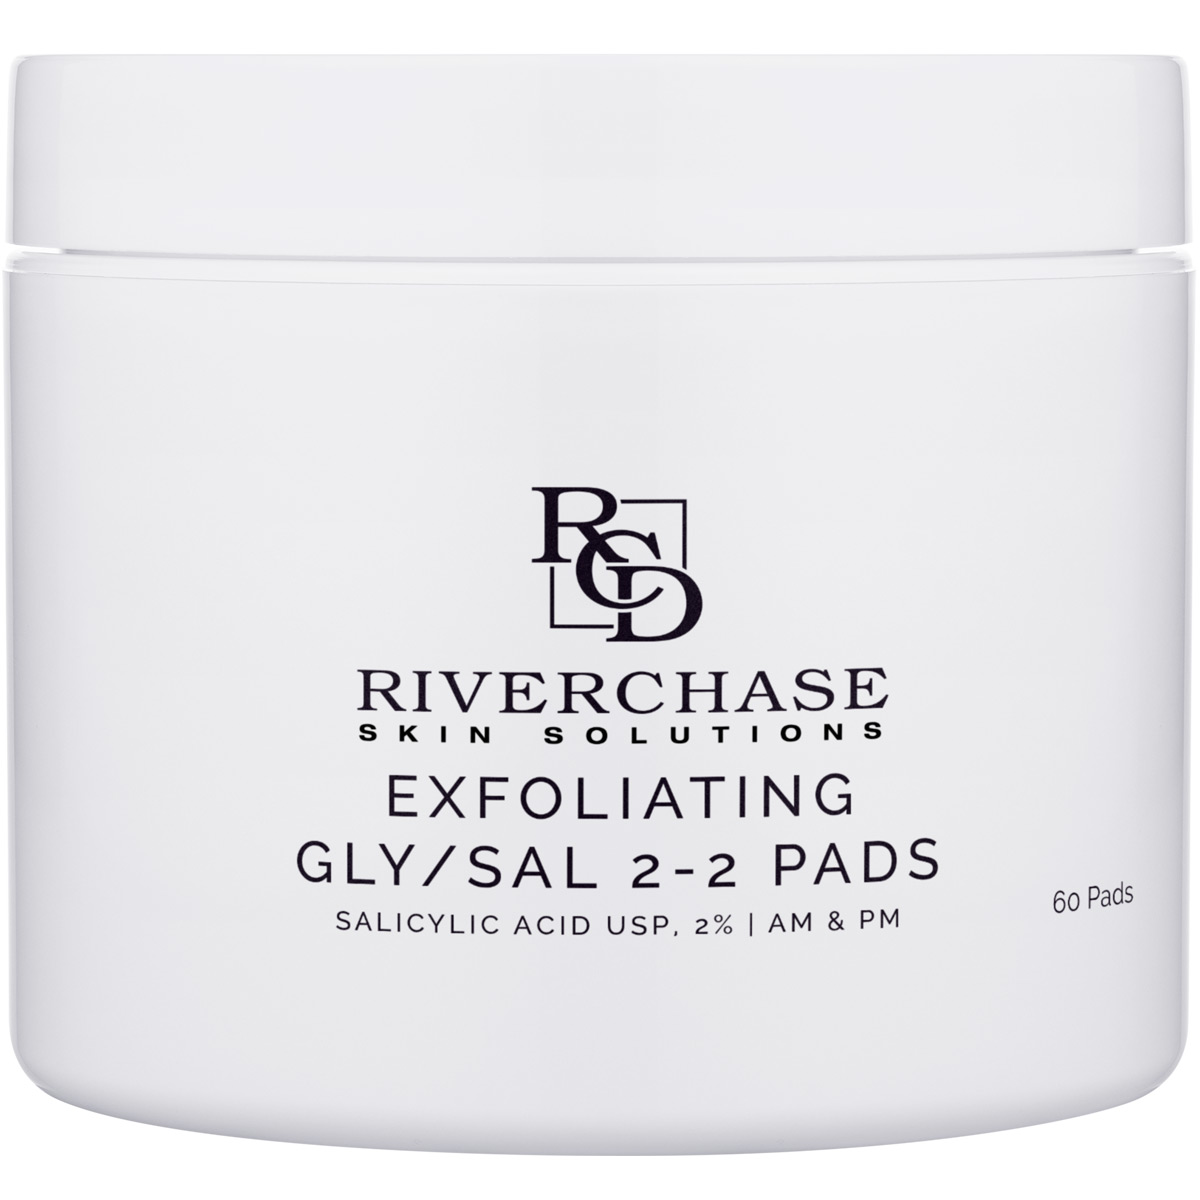 Exfoliating Gly/Sal 2-2 Pads